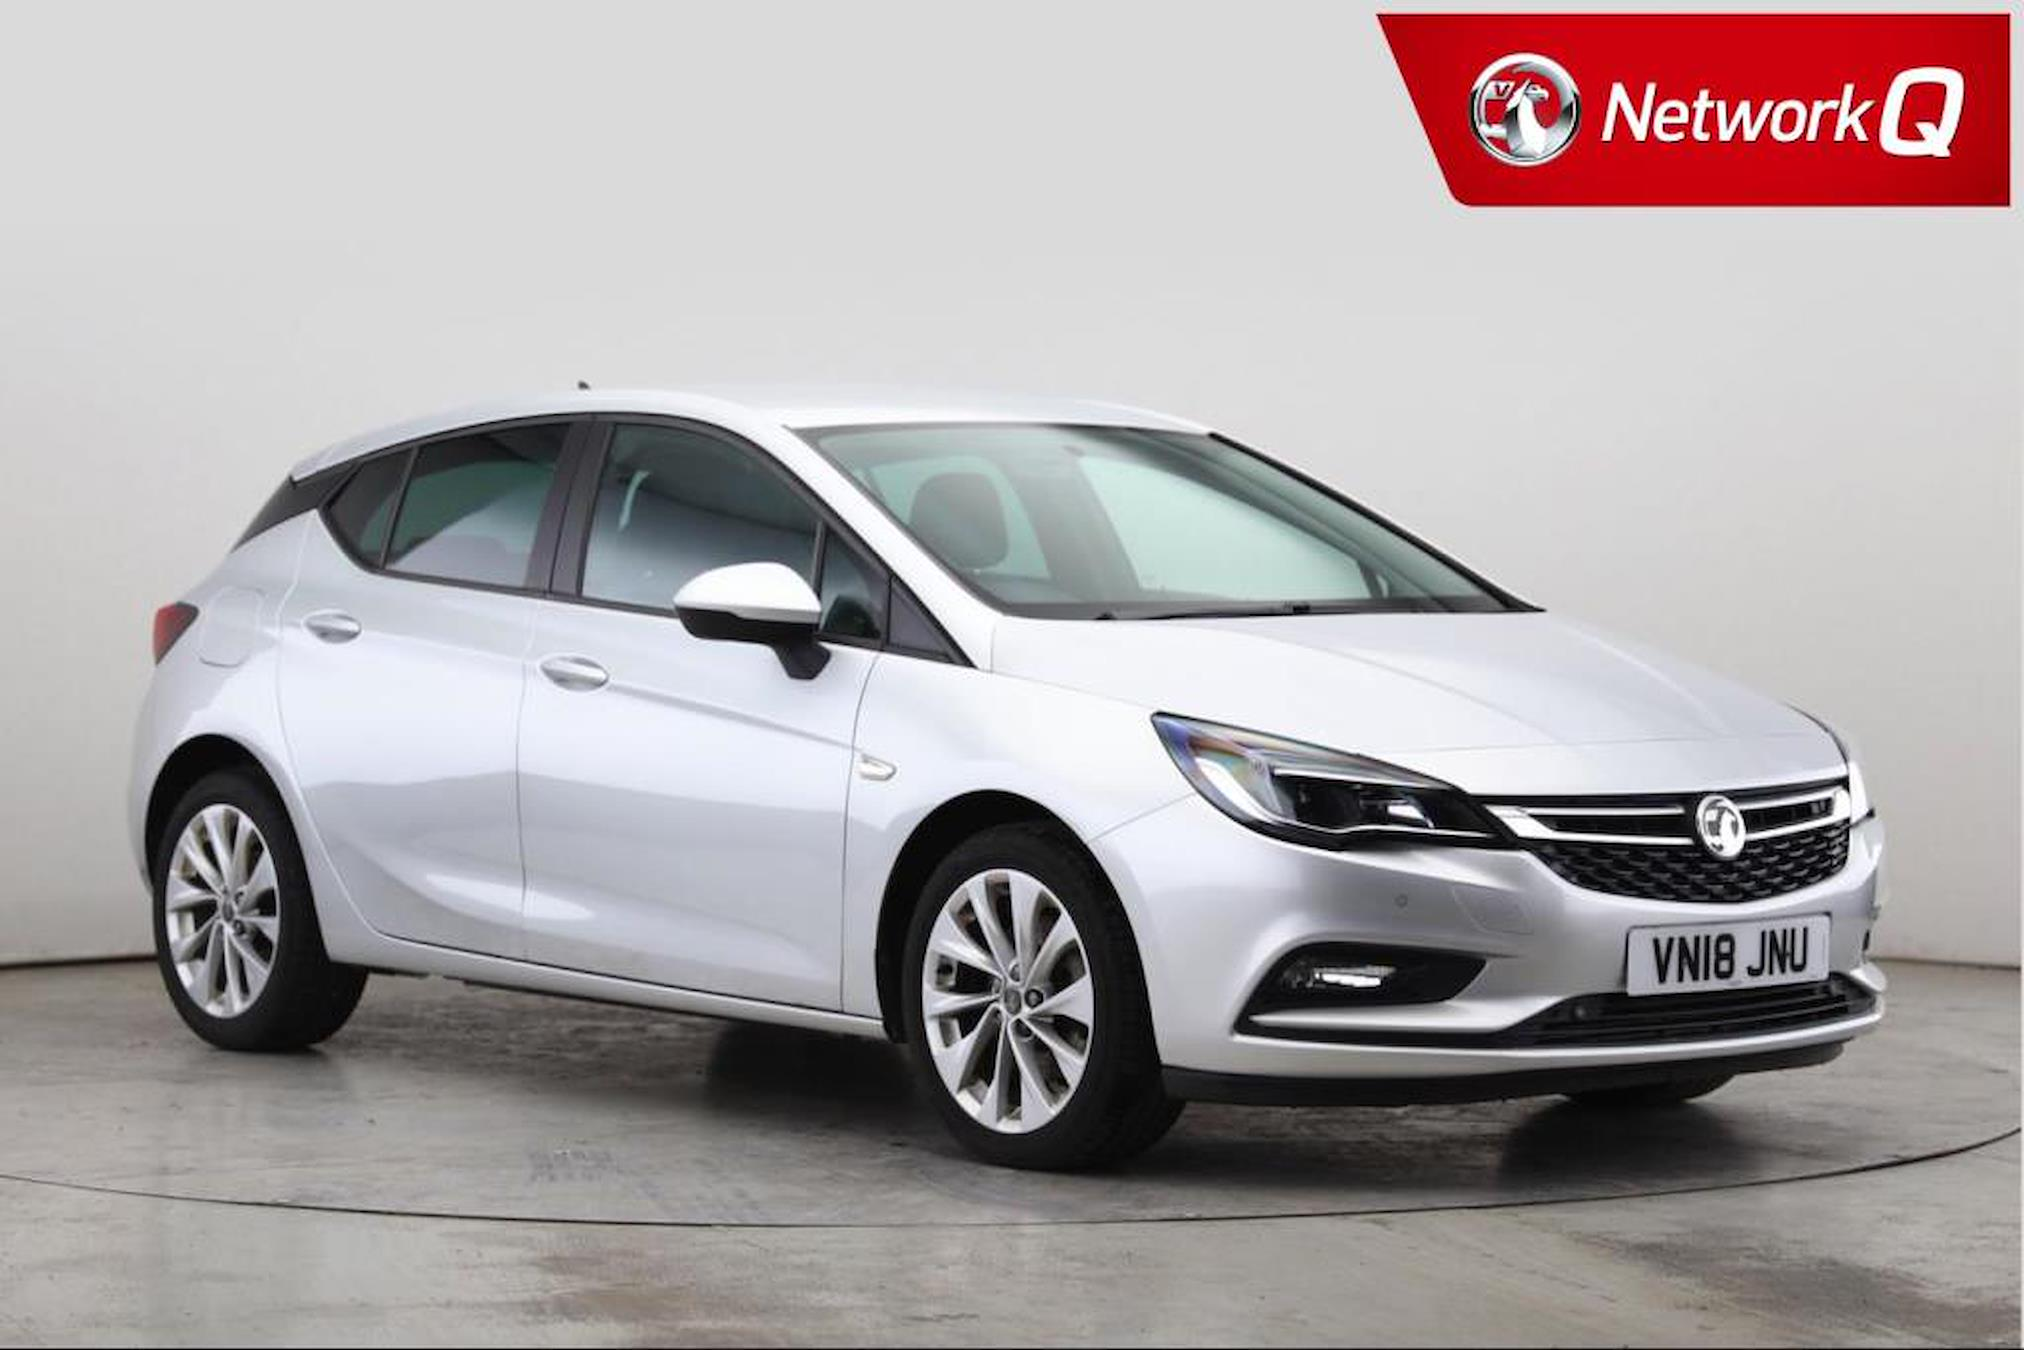 Used Astra Vauxhall 1 6 Cdti 16v 136 Tech Line Nav 5dr 2018 Lookers